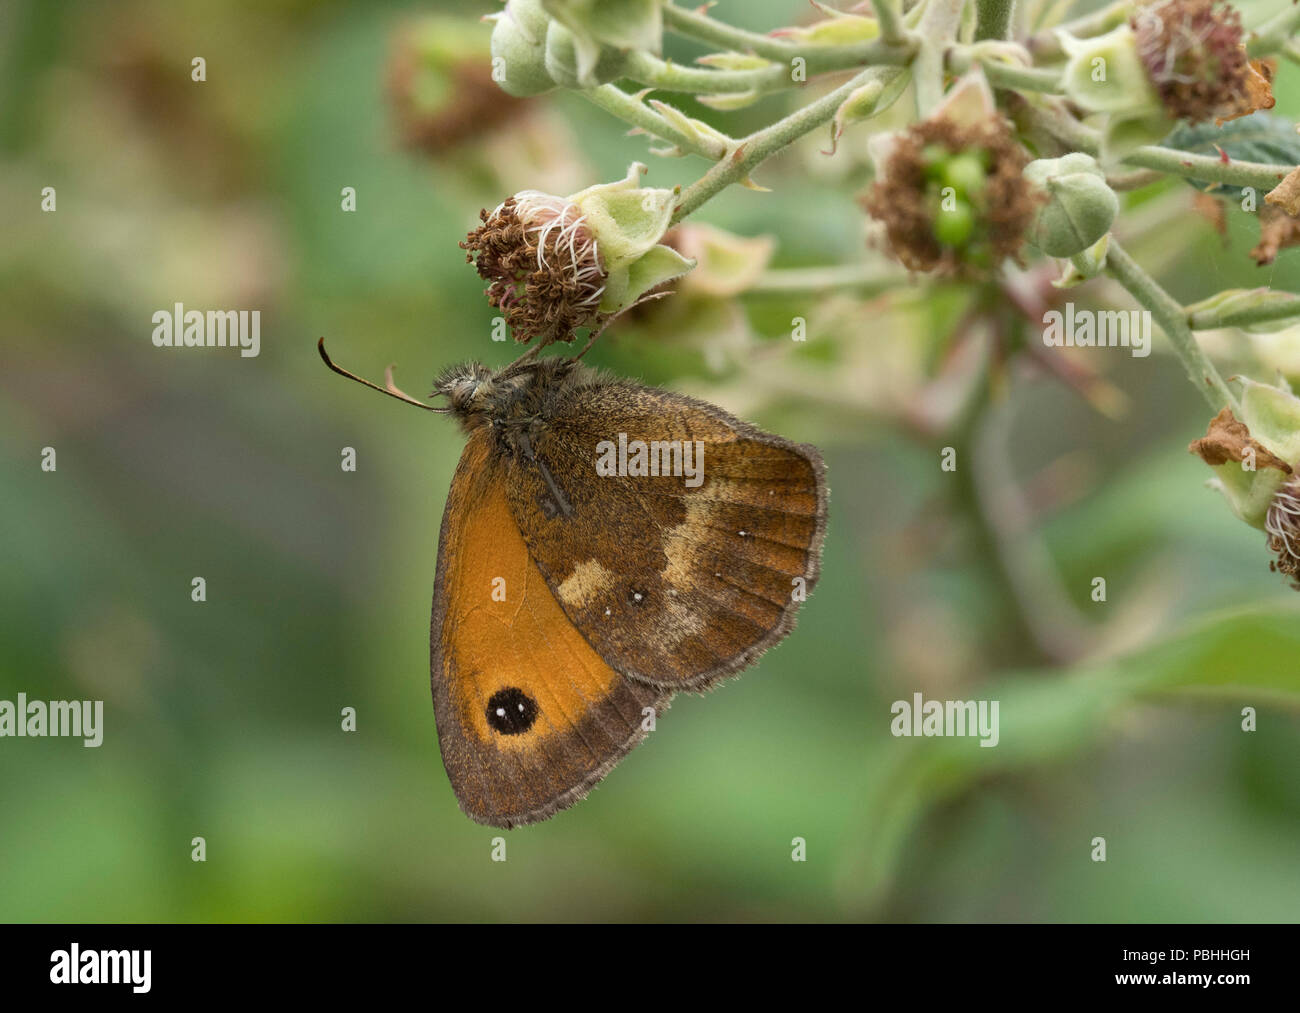 Gatekeeper Butterfly, Pyronia tithonus, single adult feeding on bramble flowers, Worcestershie, UK - Stock Image